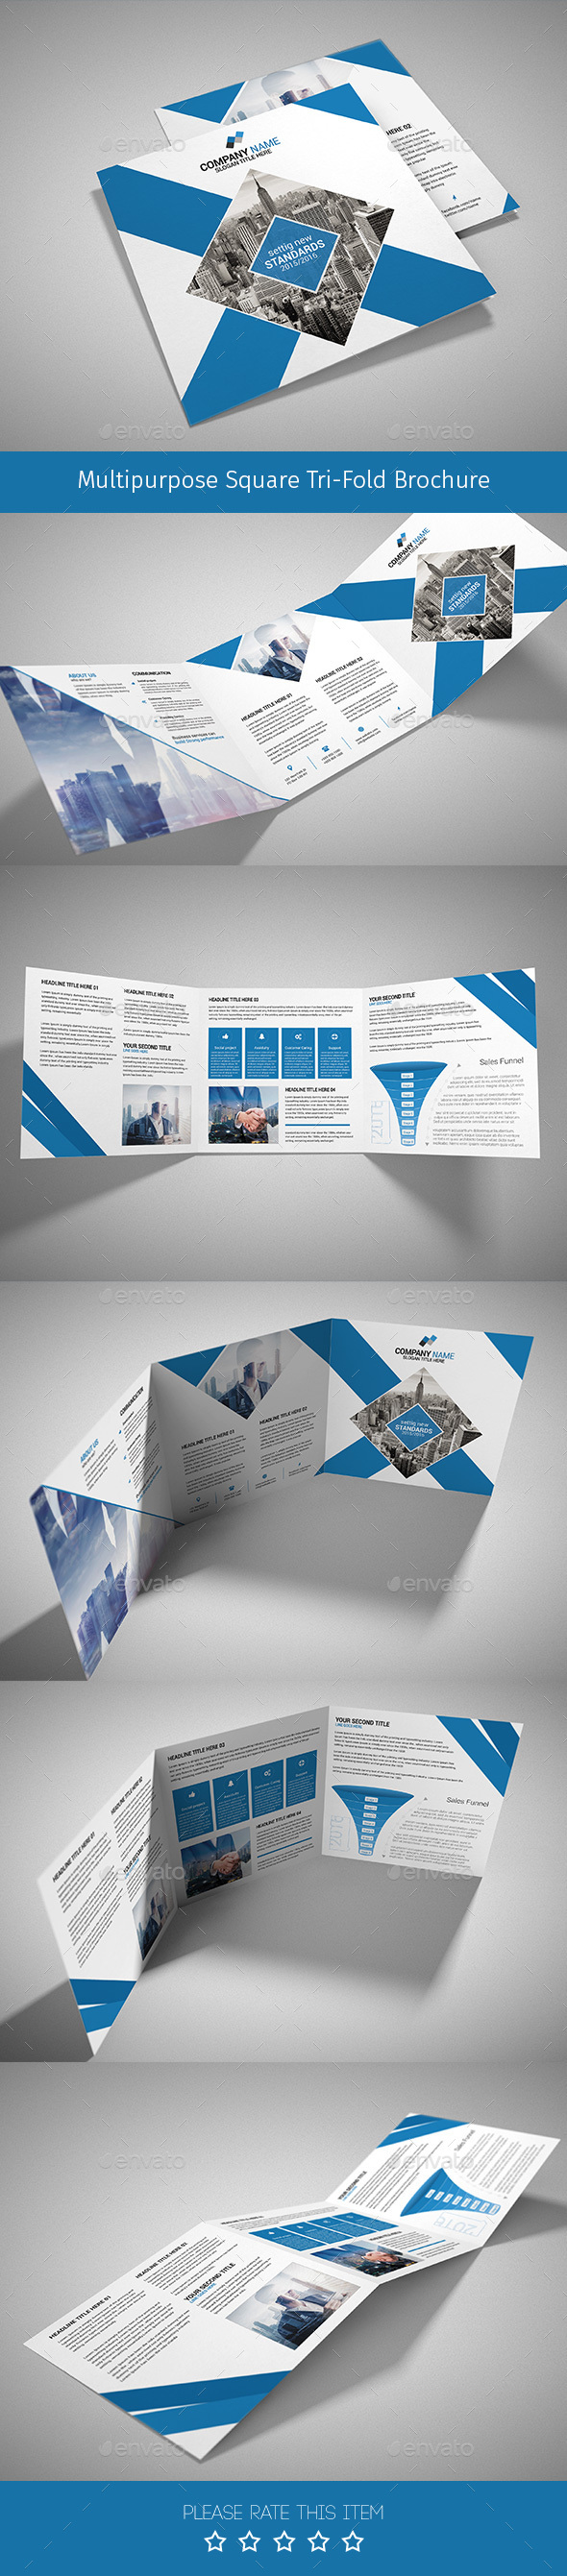 Corporate Tri-fold Square Brochure 08 - Corporate Brochures